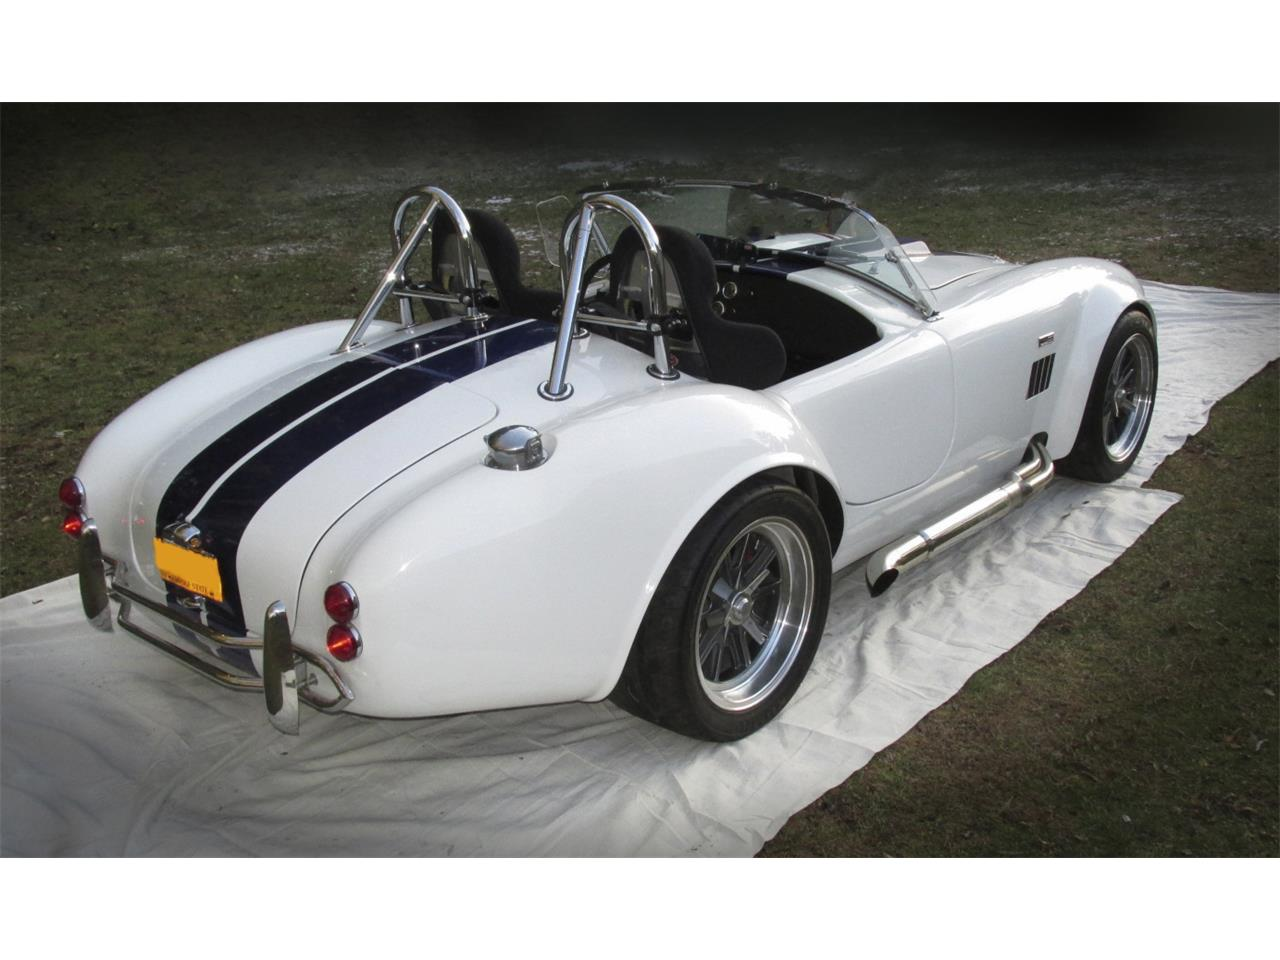 Large Picture of '65 Cobra Replica located in Speculator New York - $49,000.00 - N693